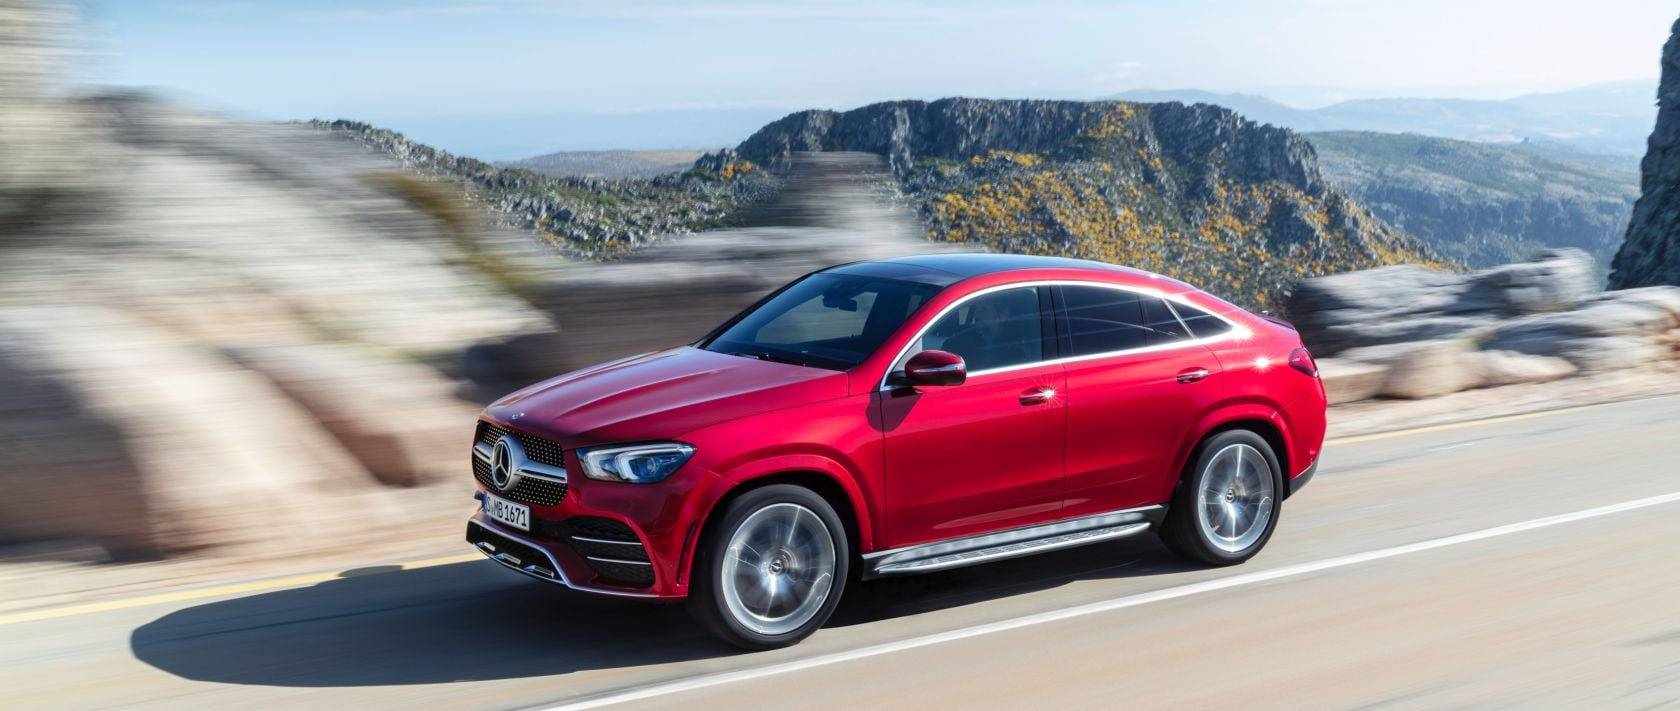 Side view of the new 2020 Mercedes-Benz GLE Coupé (C 167) in designo hyacinth red metallic on a country road.